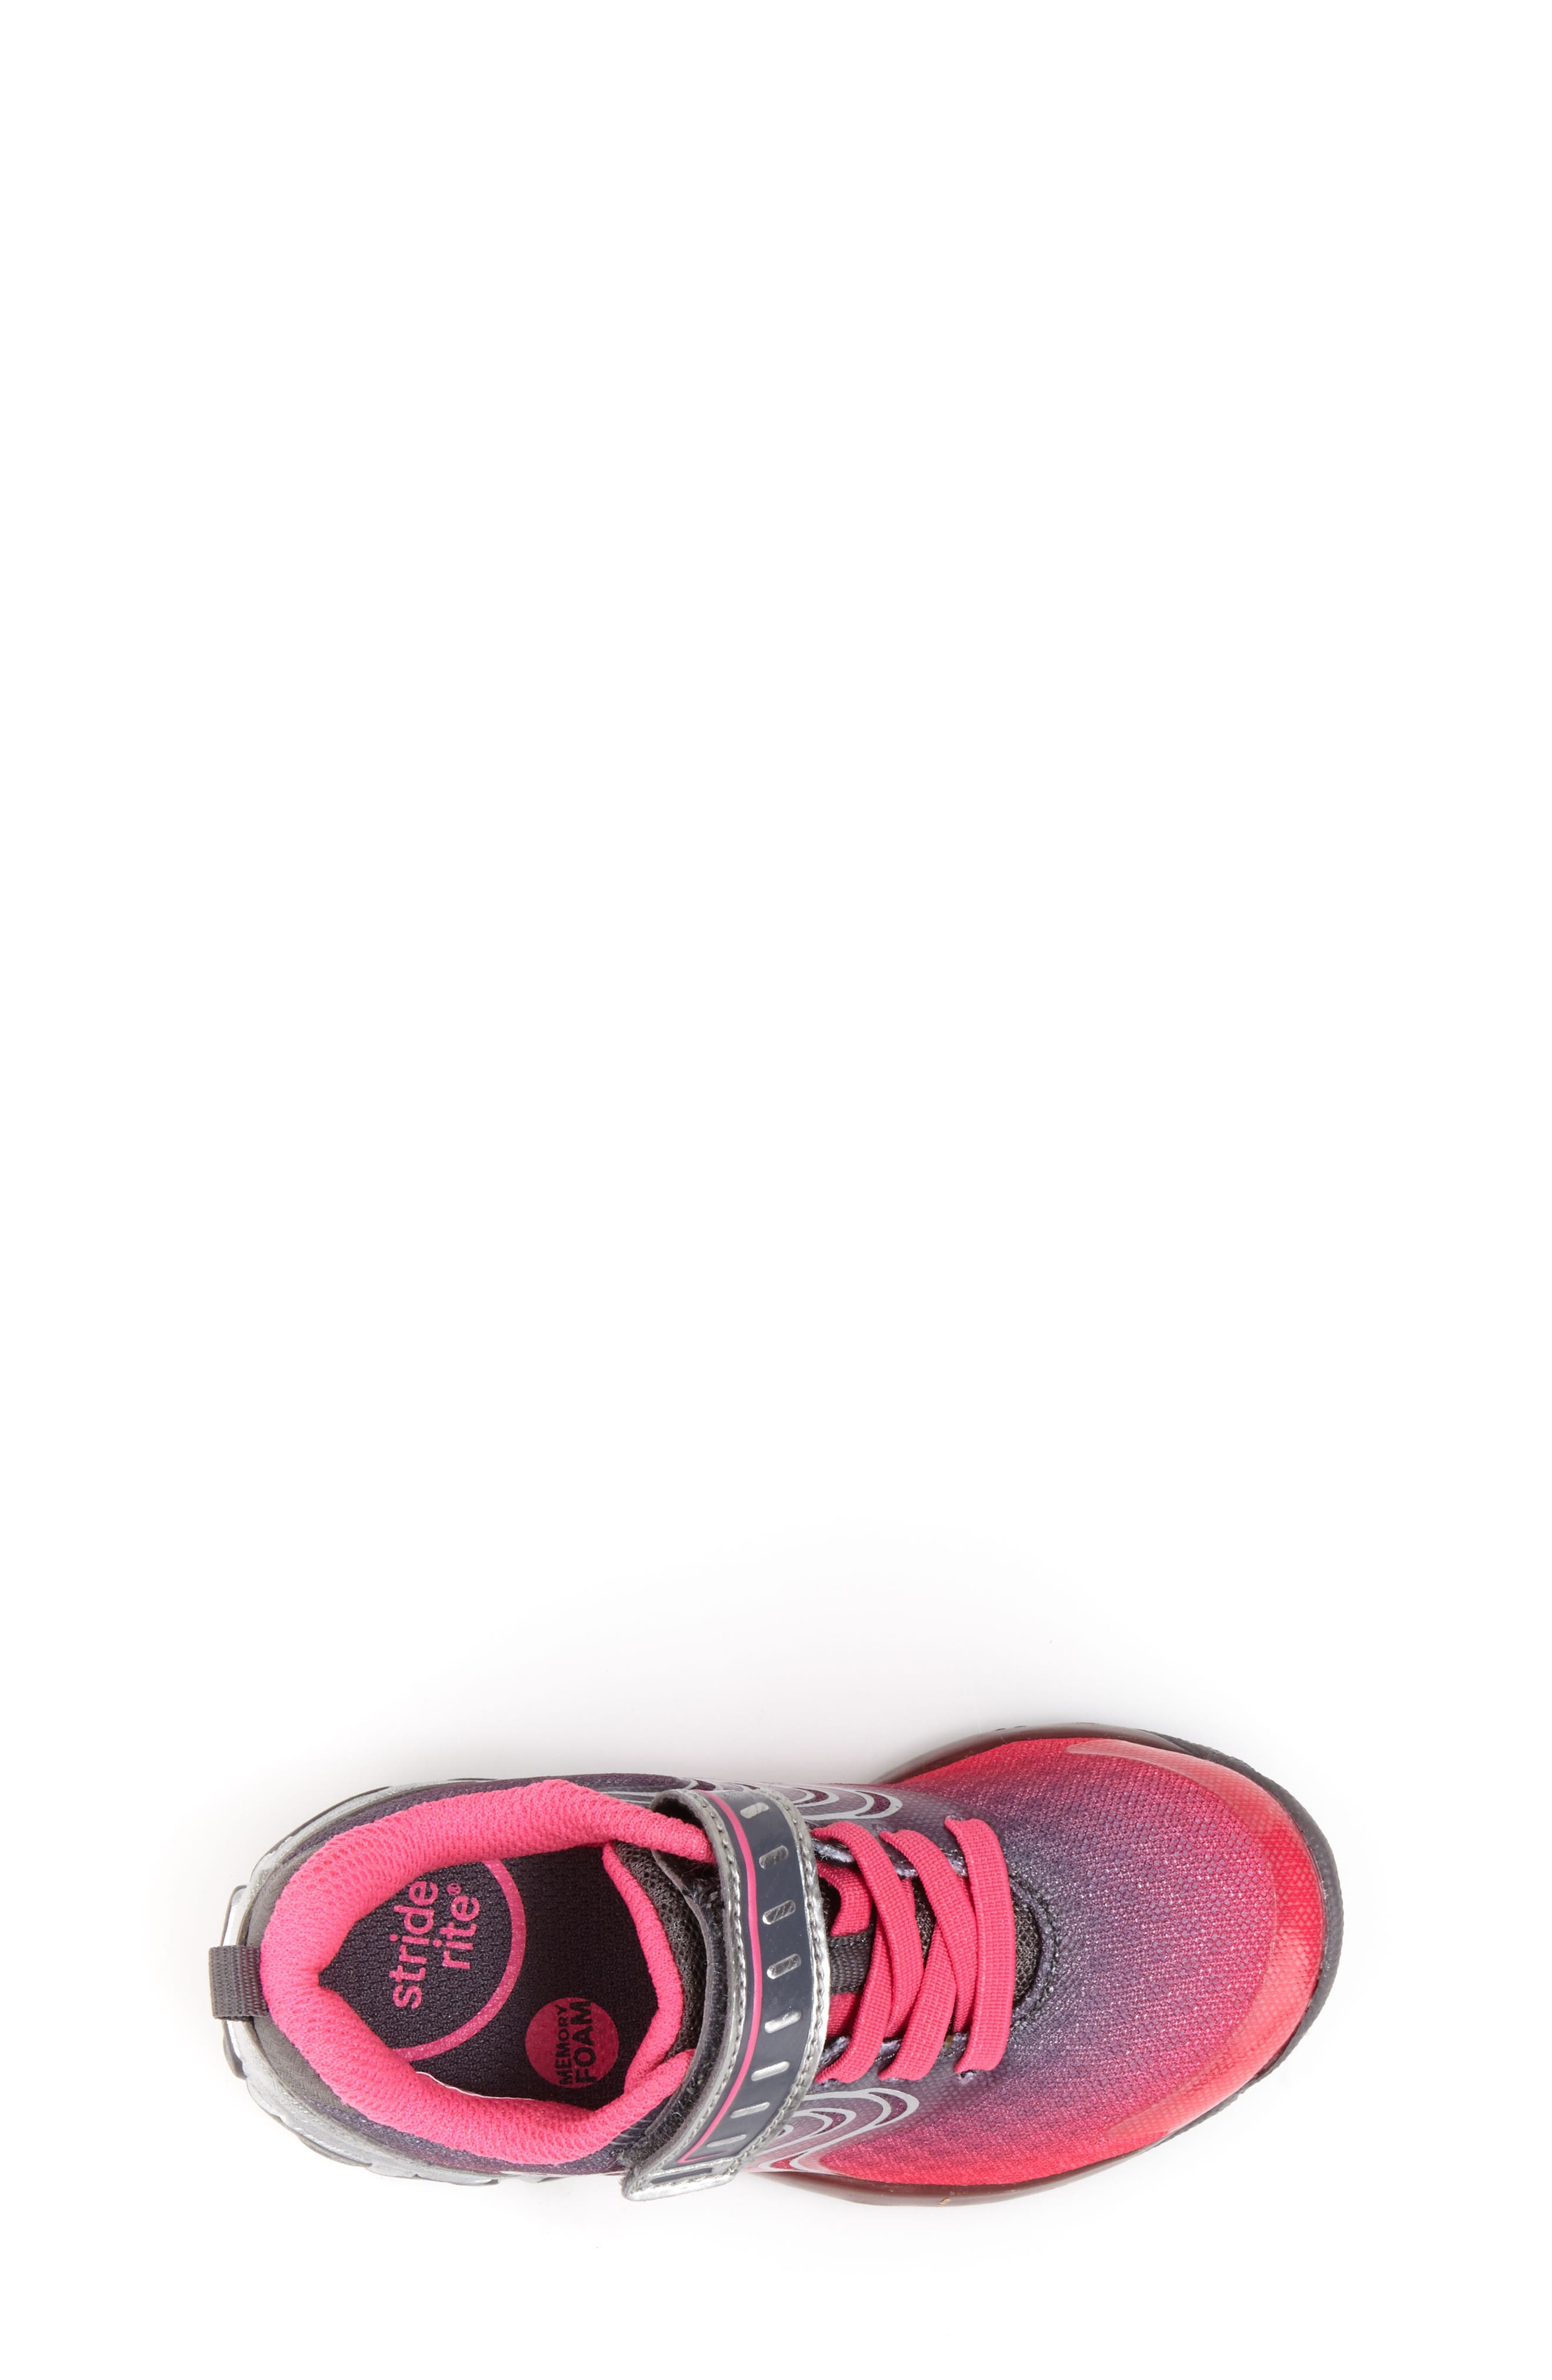 Lights Lux Light-Up Sneaker,                             Alternate thumbnail 5, color,                             PINK SYNTHETIC/ TEXTILE